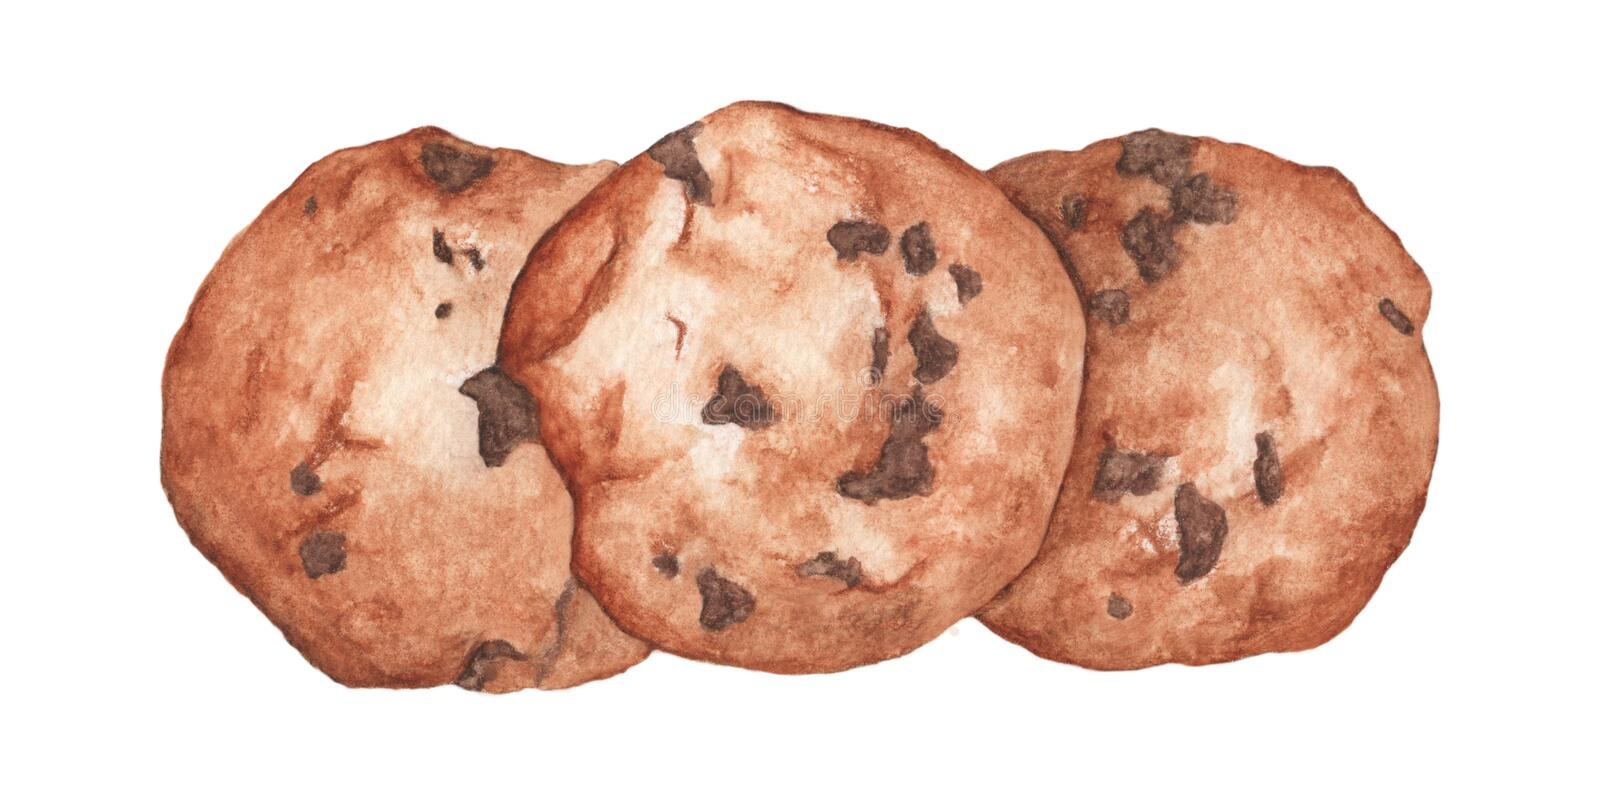 Chocolate chip cookies. Hand drawn watercolor food illustration. royalty free illustration